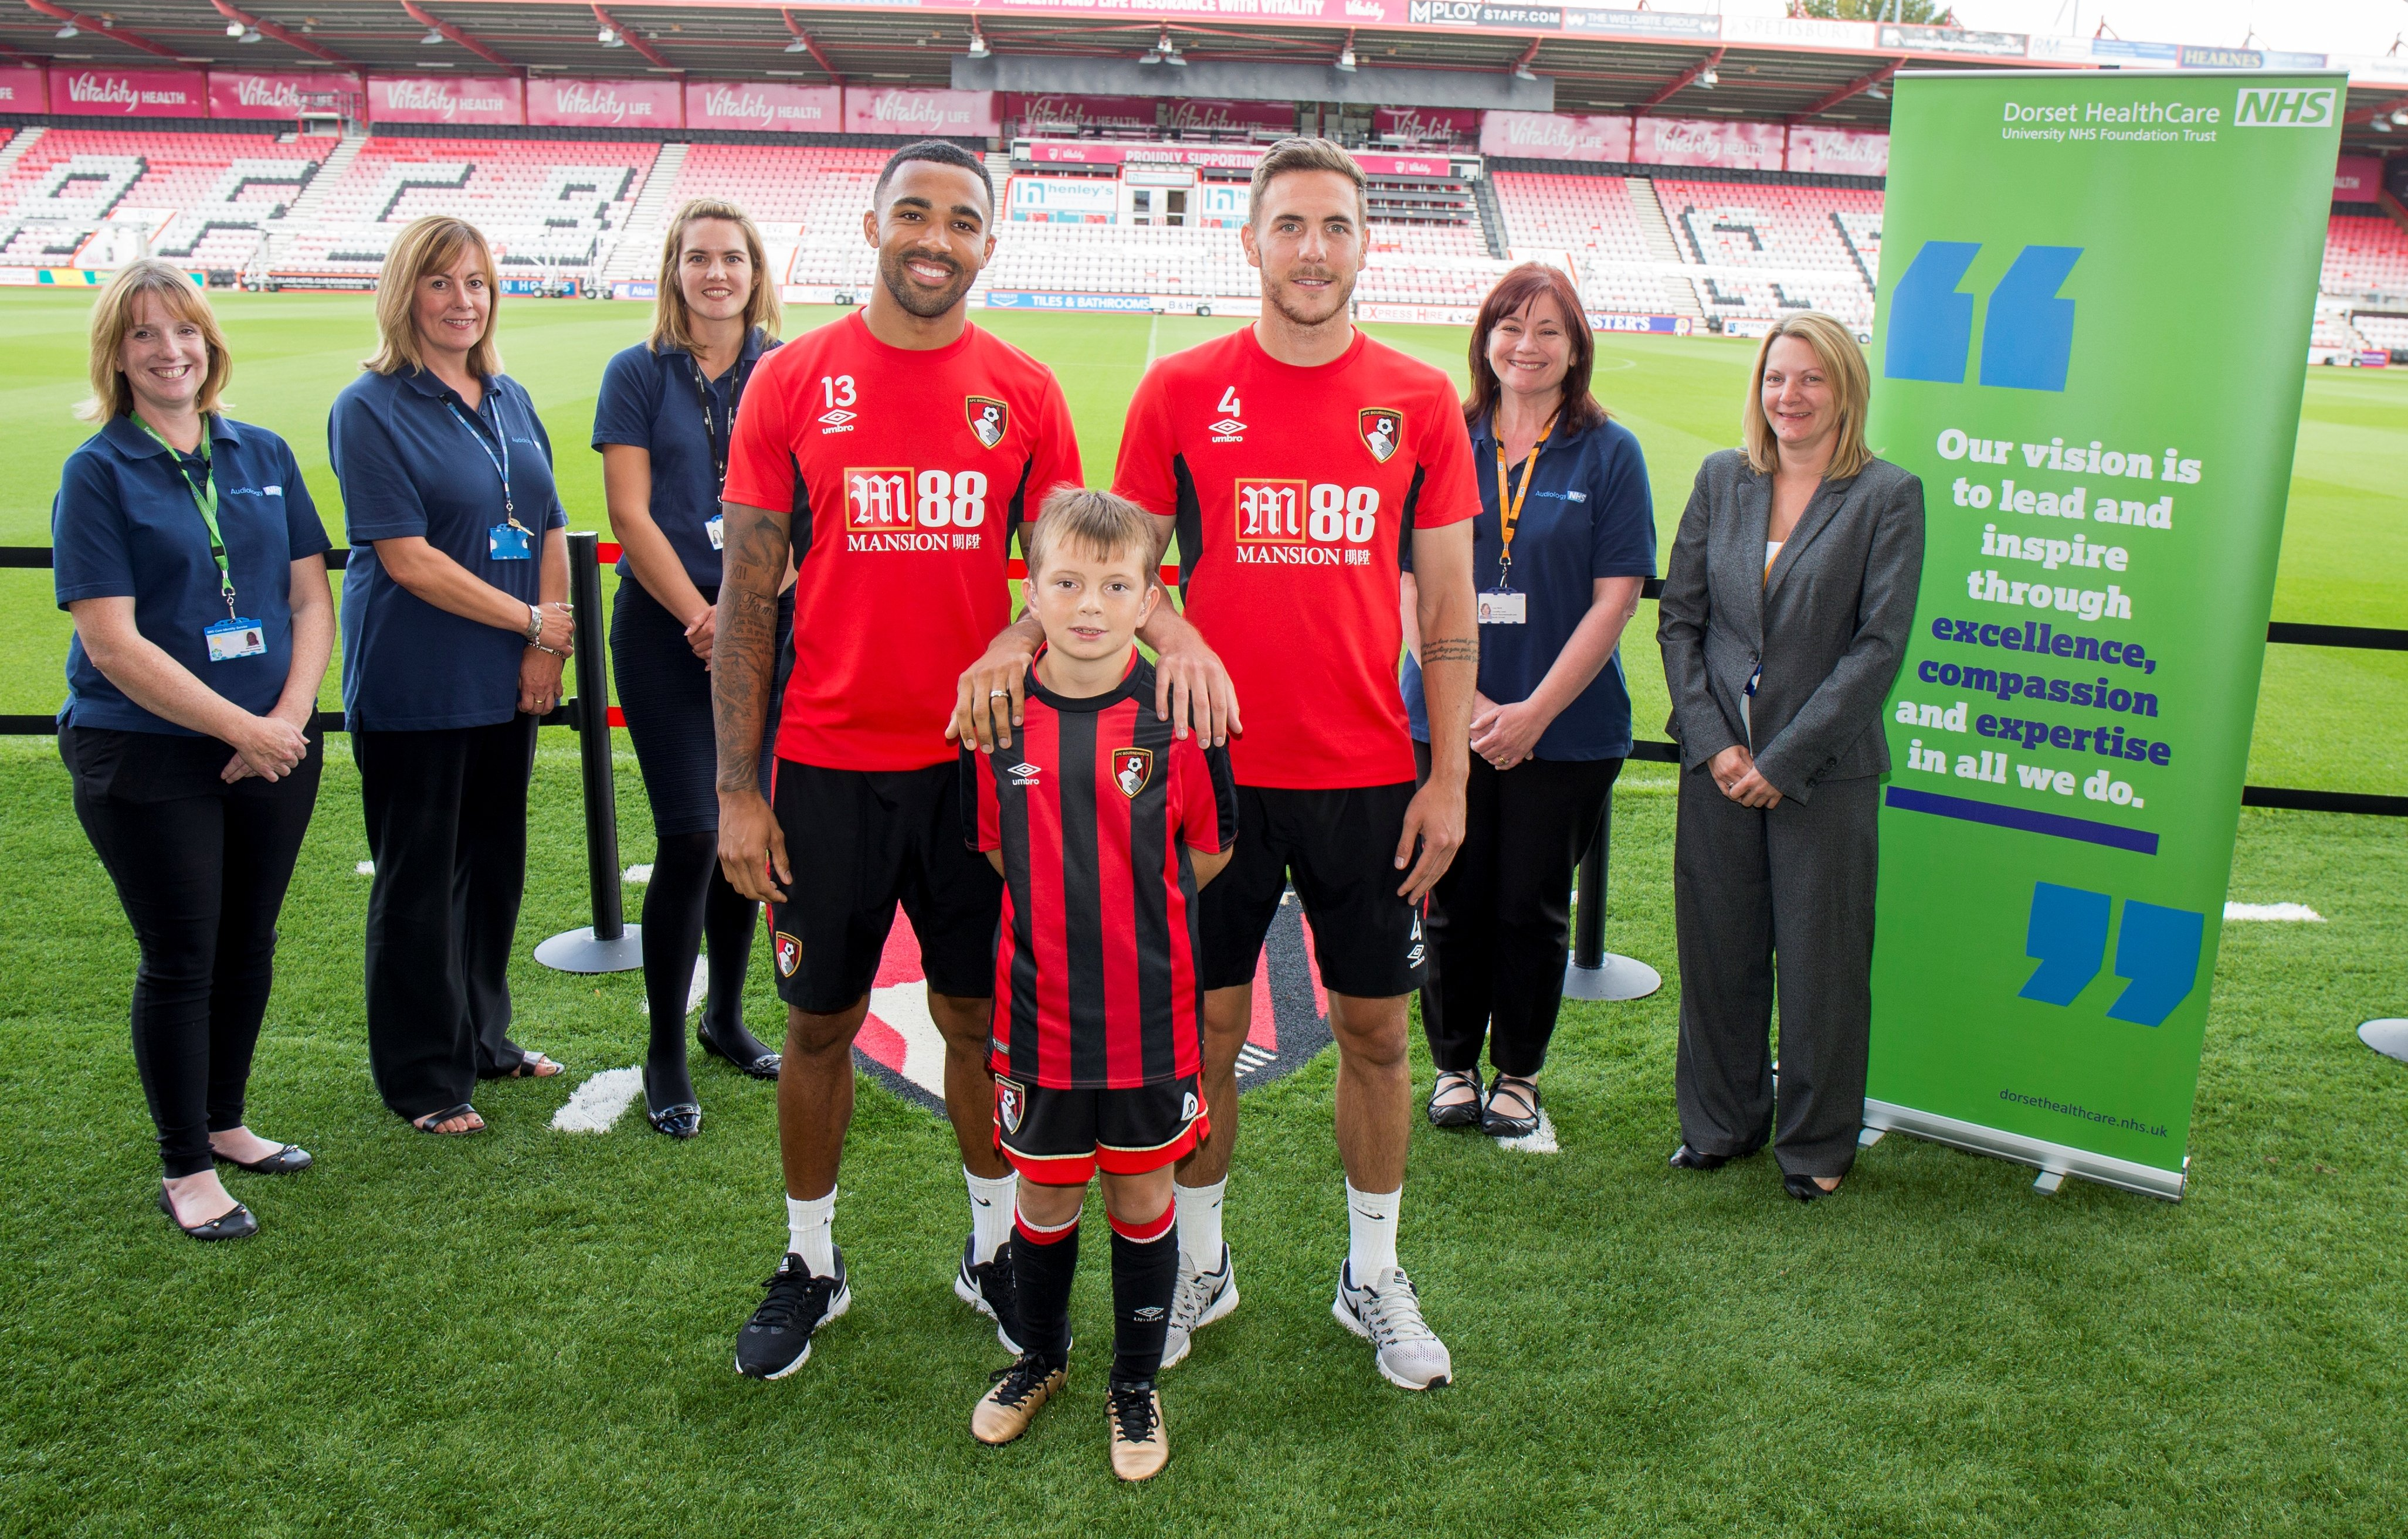 AFC Bournemouth and Dorset HealthCare join forces to give young Cherries fan new lease of life